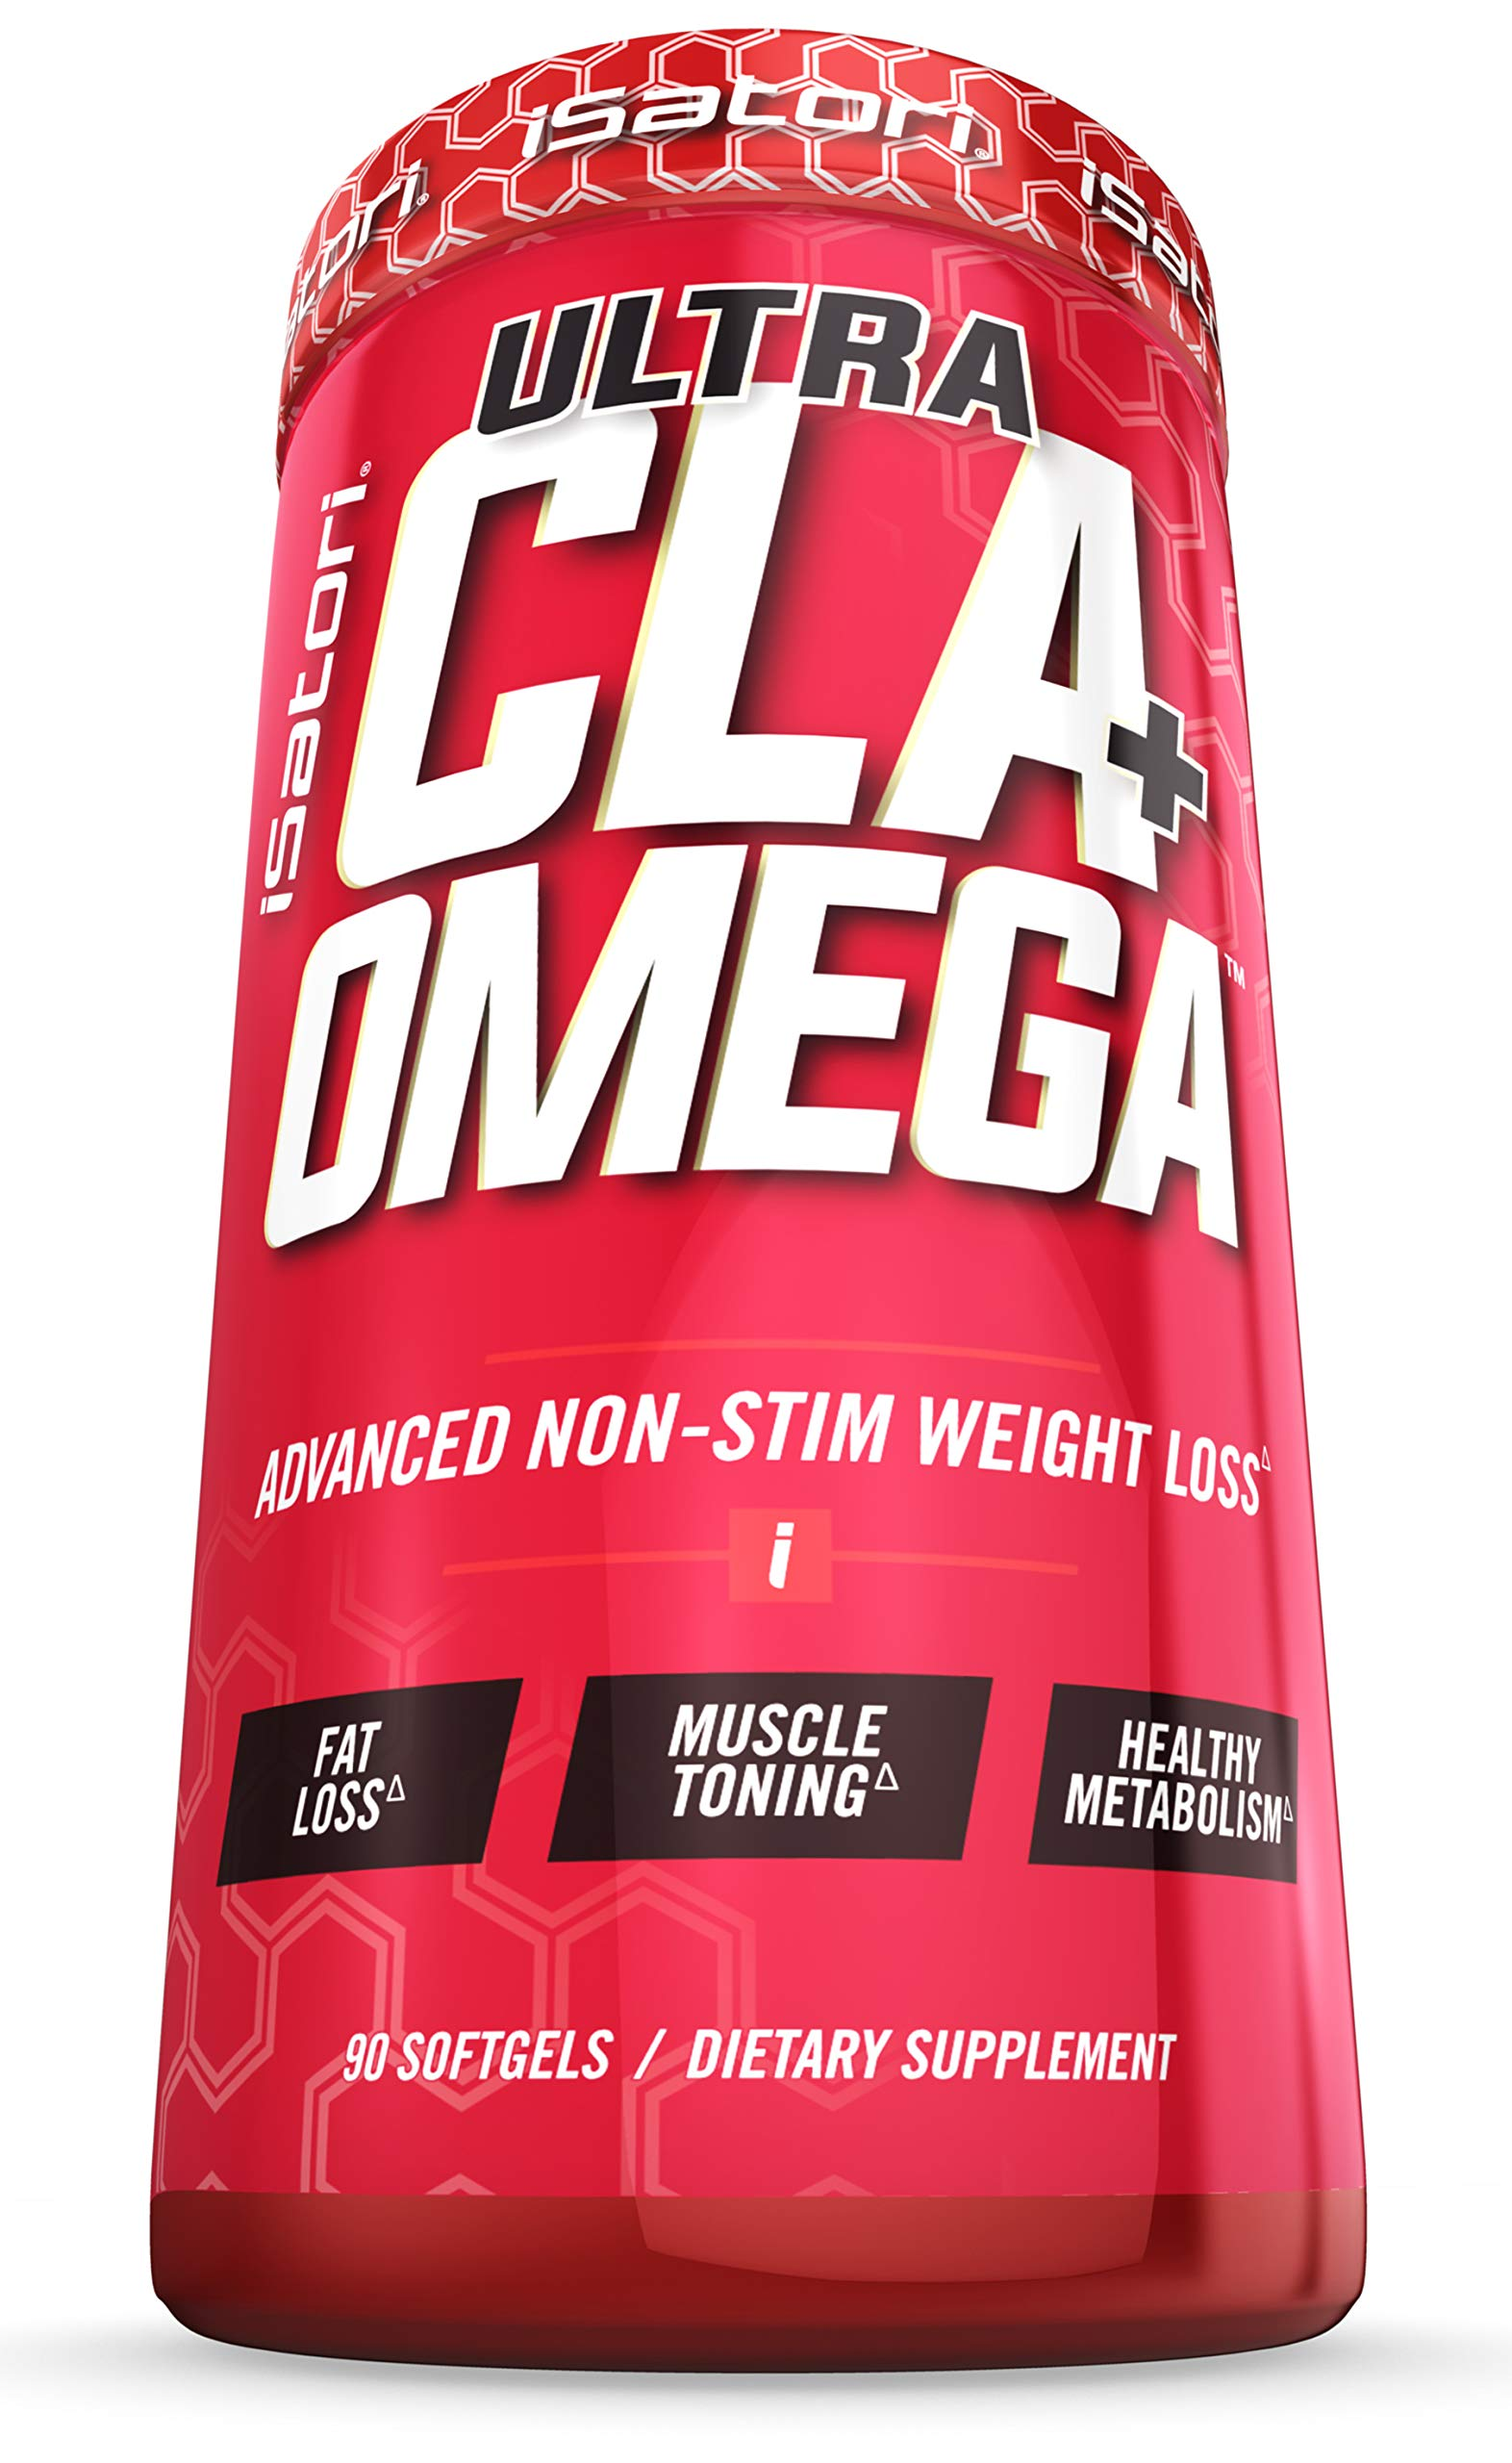 iSatori Ultra CLA Dietary Supplement with Omega For Weight Loss Advanced Non-Stimulant Formula With CLA from Safflower Oil & Omega Fatty Acids from Fish Oil - Fat Burner & Muscle Toner - 90 Softgels